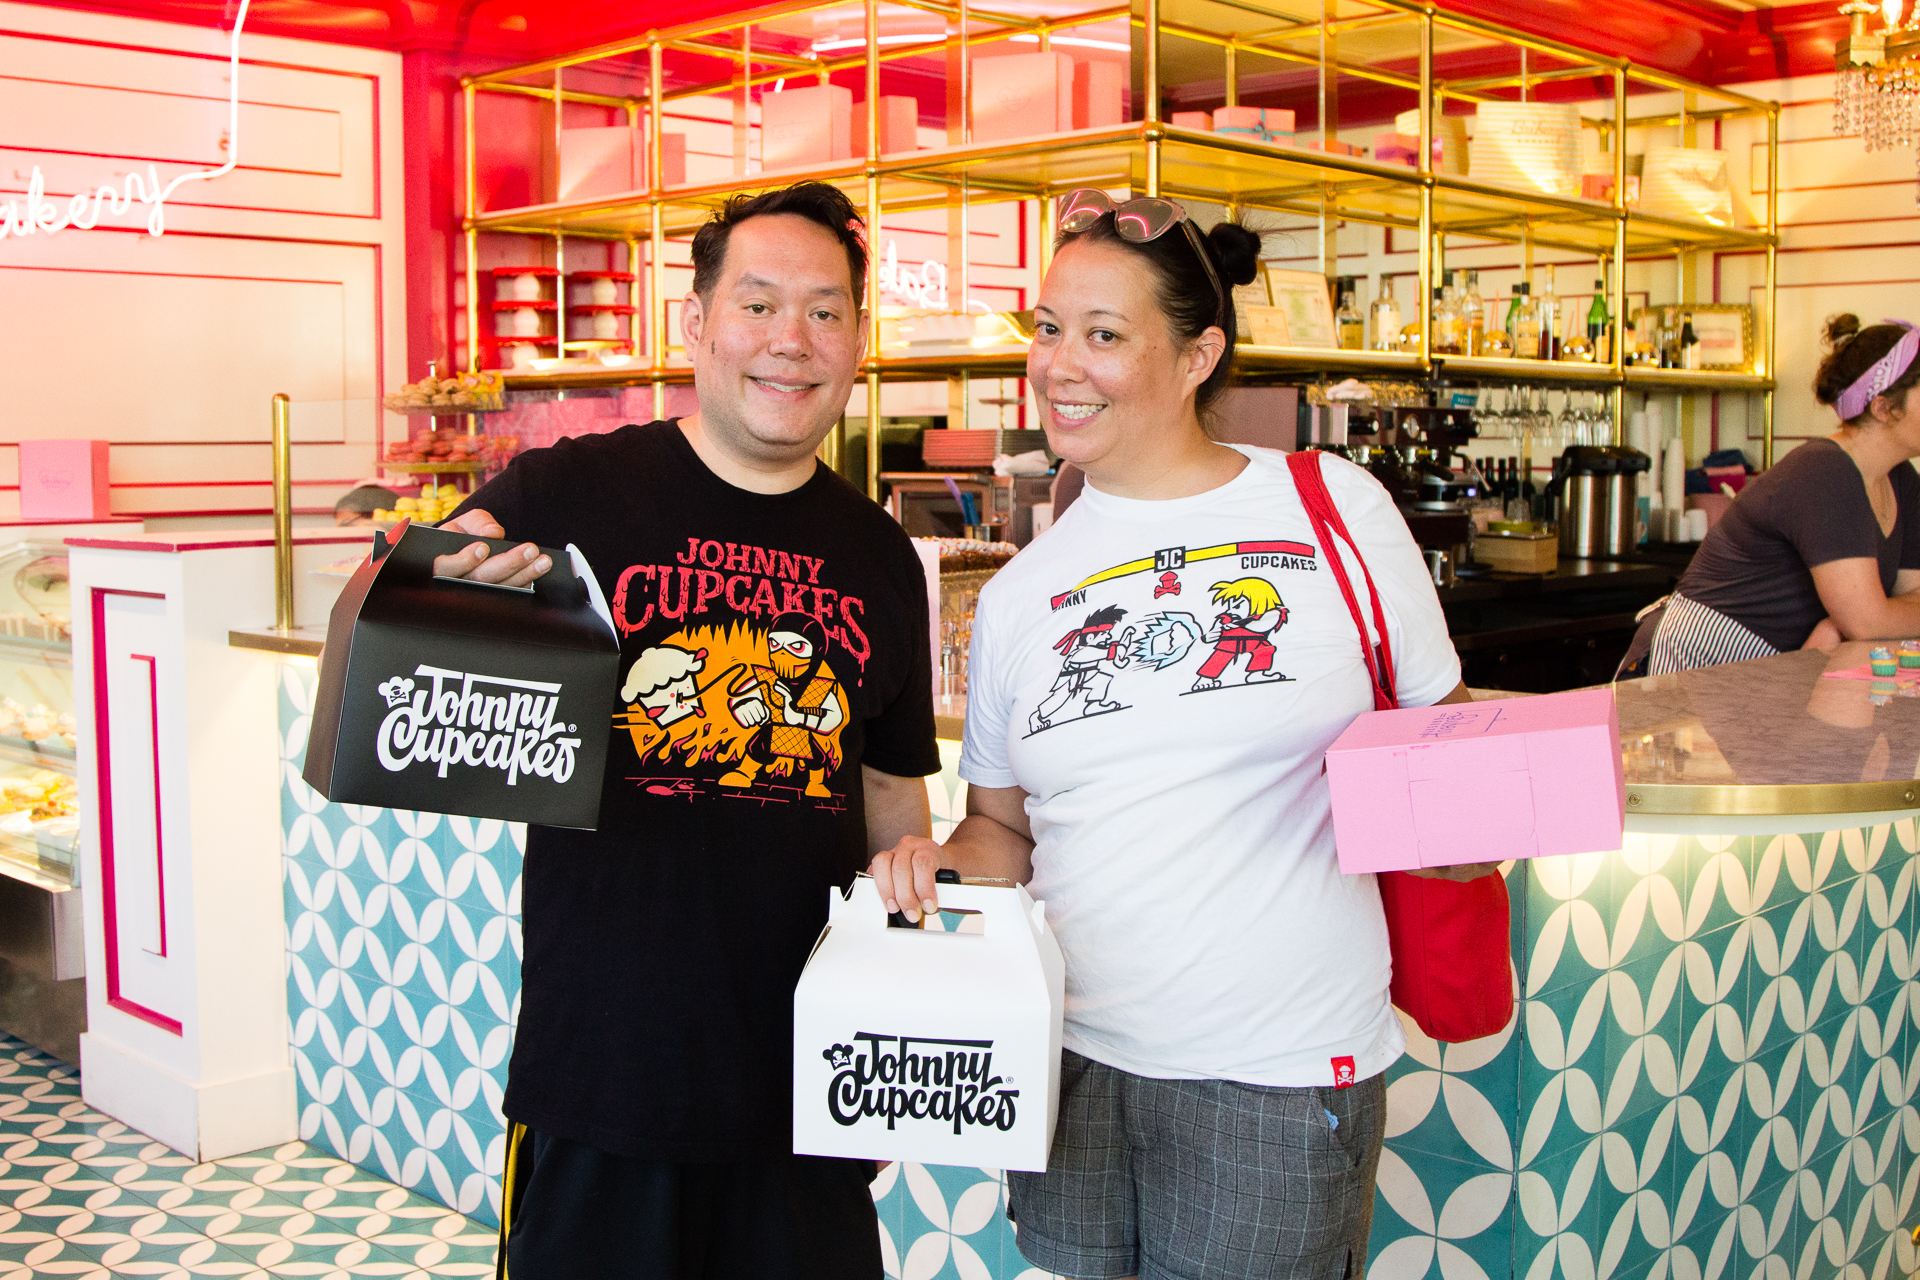 Johnny Cupcakes Pop Up Shop with Ginger Me Glam at Bribery Bakery Austin Texas-6